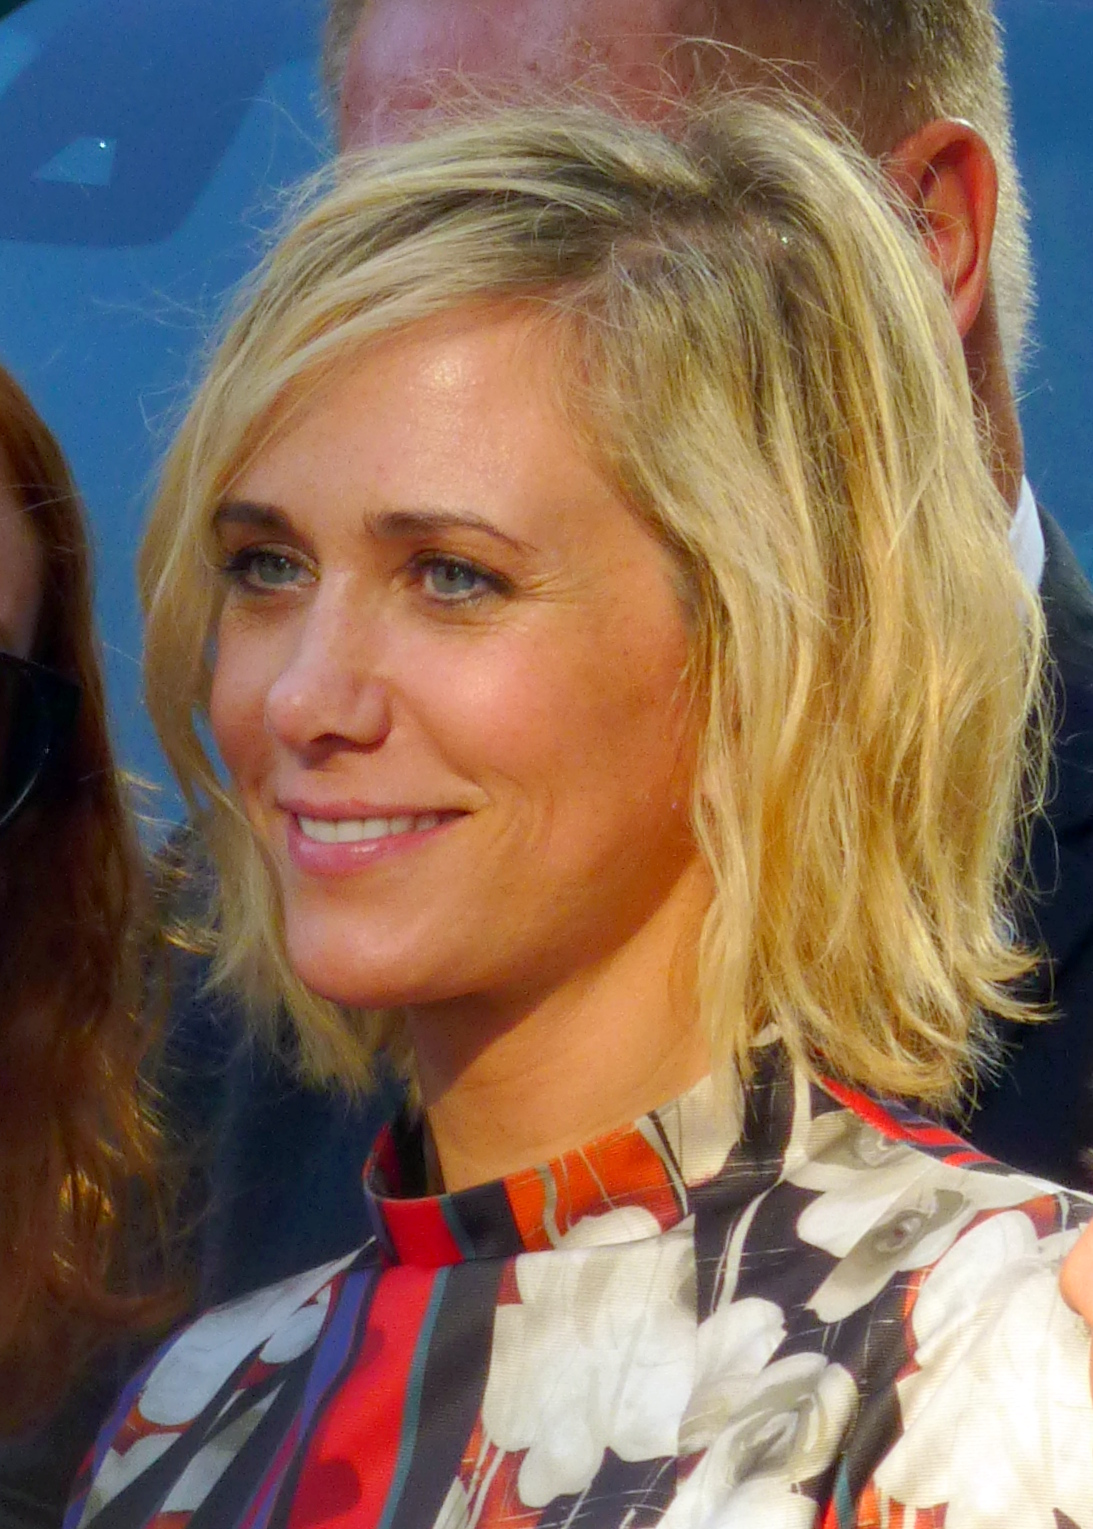 The 45-year old daughter of father Jon J. Wiig and mother Laurie J. Johnston Kristen Wiig in 2019 photo. Kristen Wiig earned a  million dollar salary - leaving the net worth at 16 million in 2019